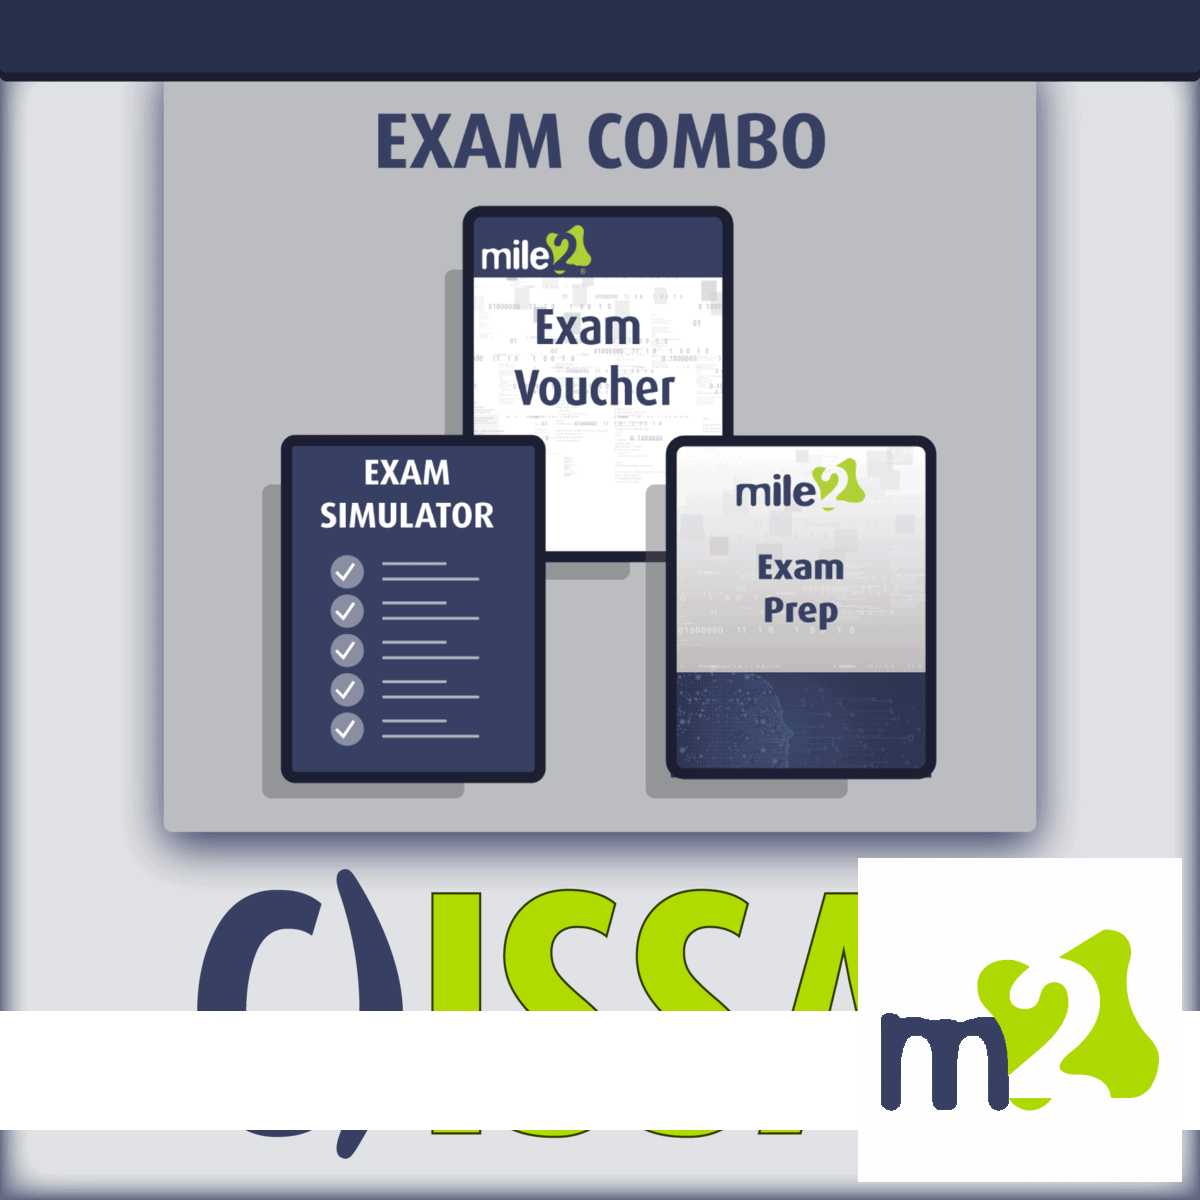 Information Systems Security Auditor Exam Combo